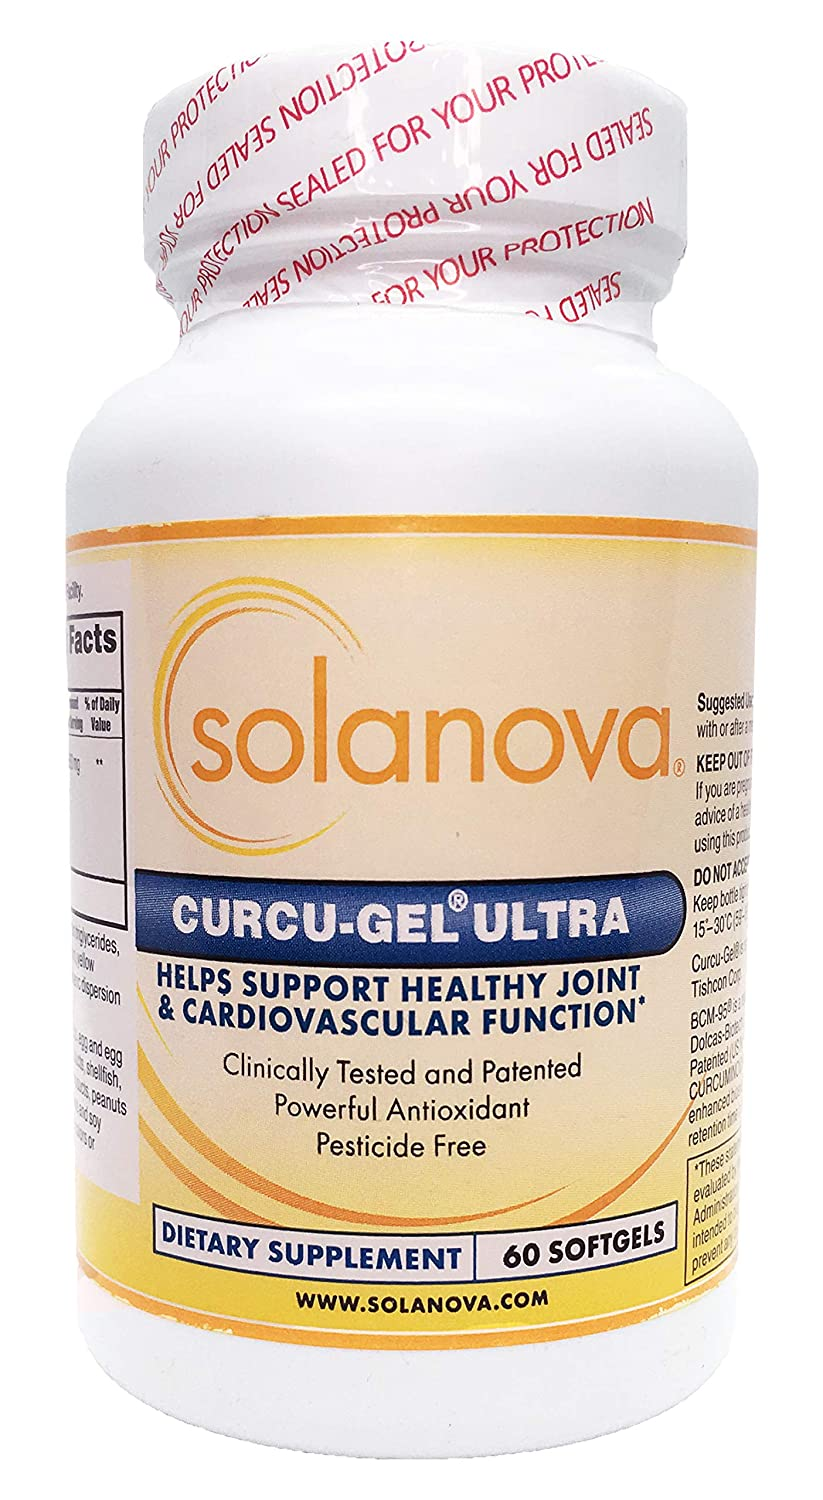 Curcu-Gel Ultra Curcumin Spice Supplement 500mg, 60 Softgels by Solanova